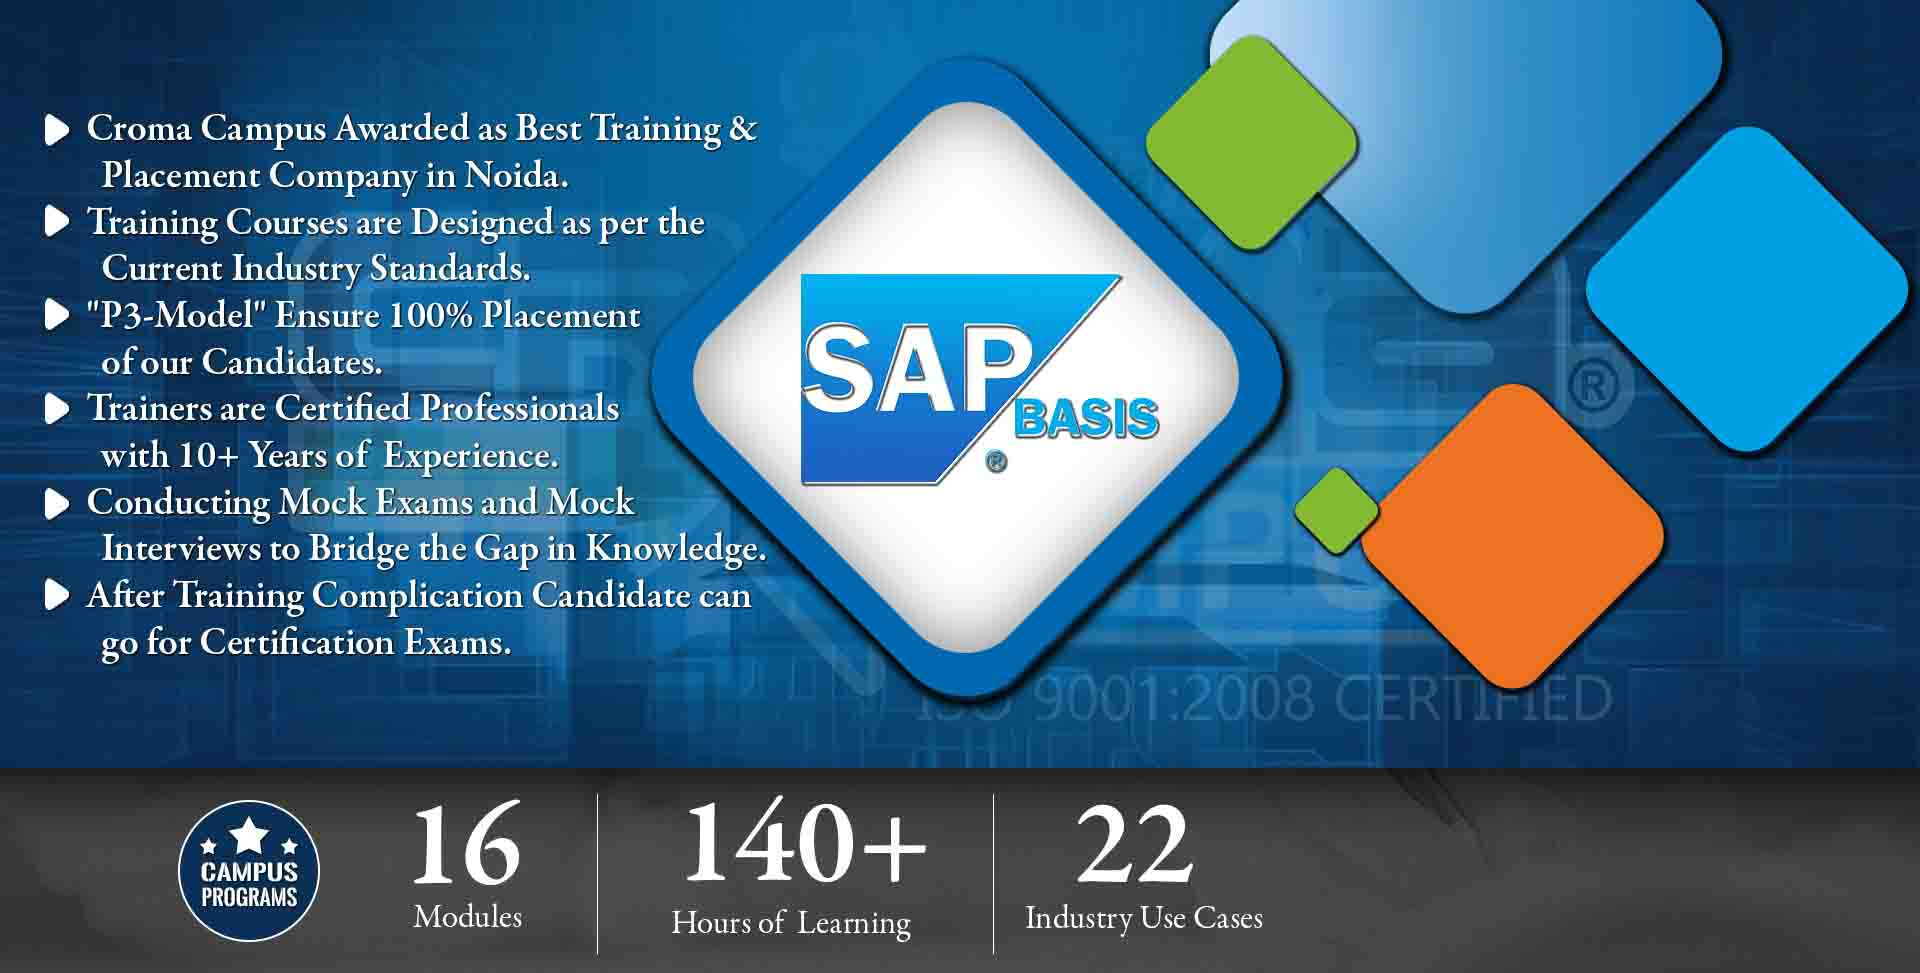 SAP HANA TRAINING INSTITUTE IN NOIDA